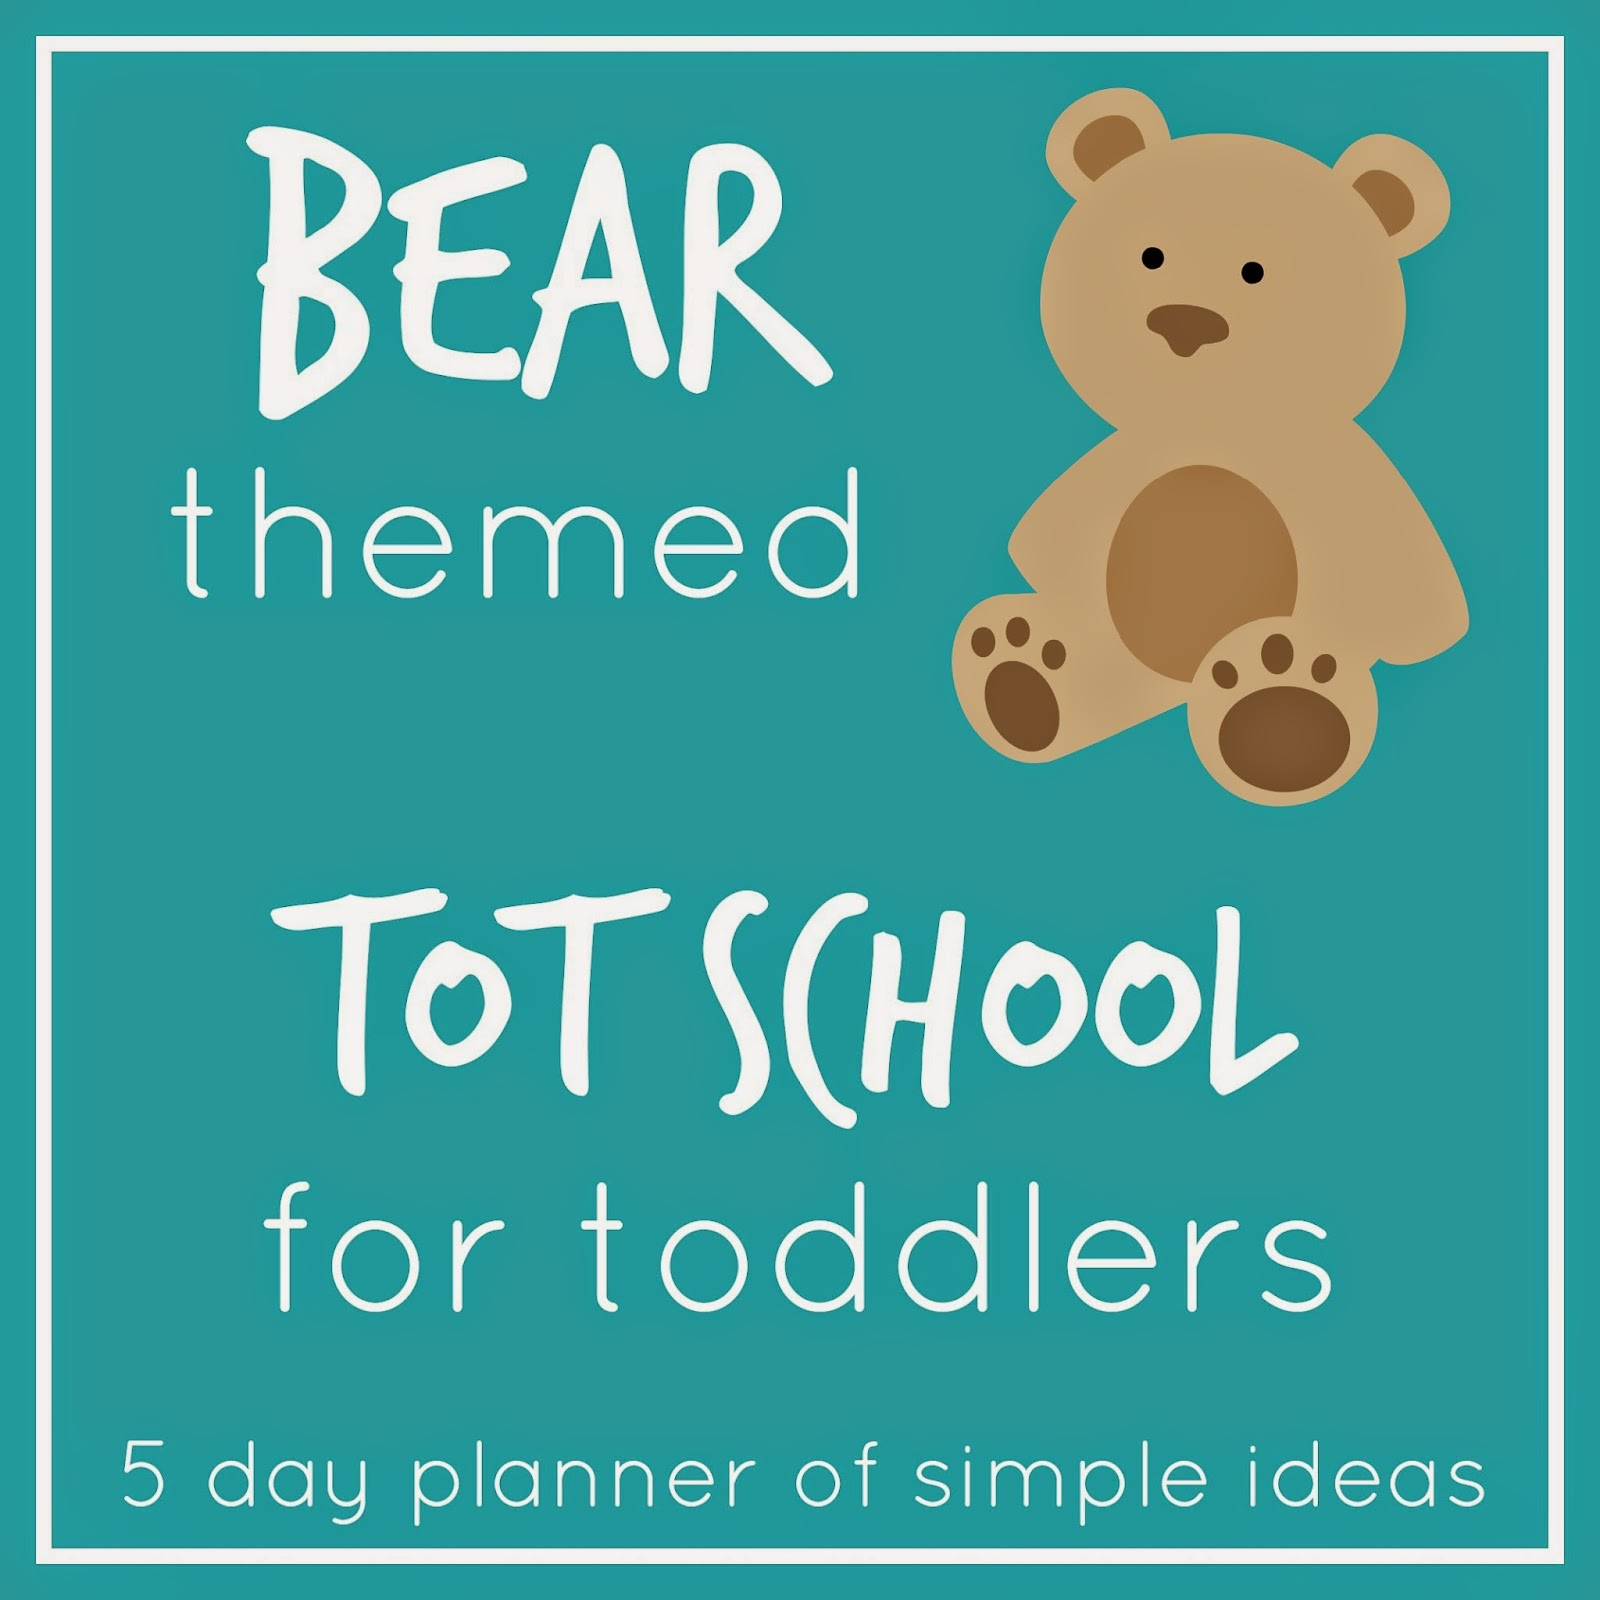 Toddler Approved!: Bear Themed Tot School Activities for Toddlers